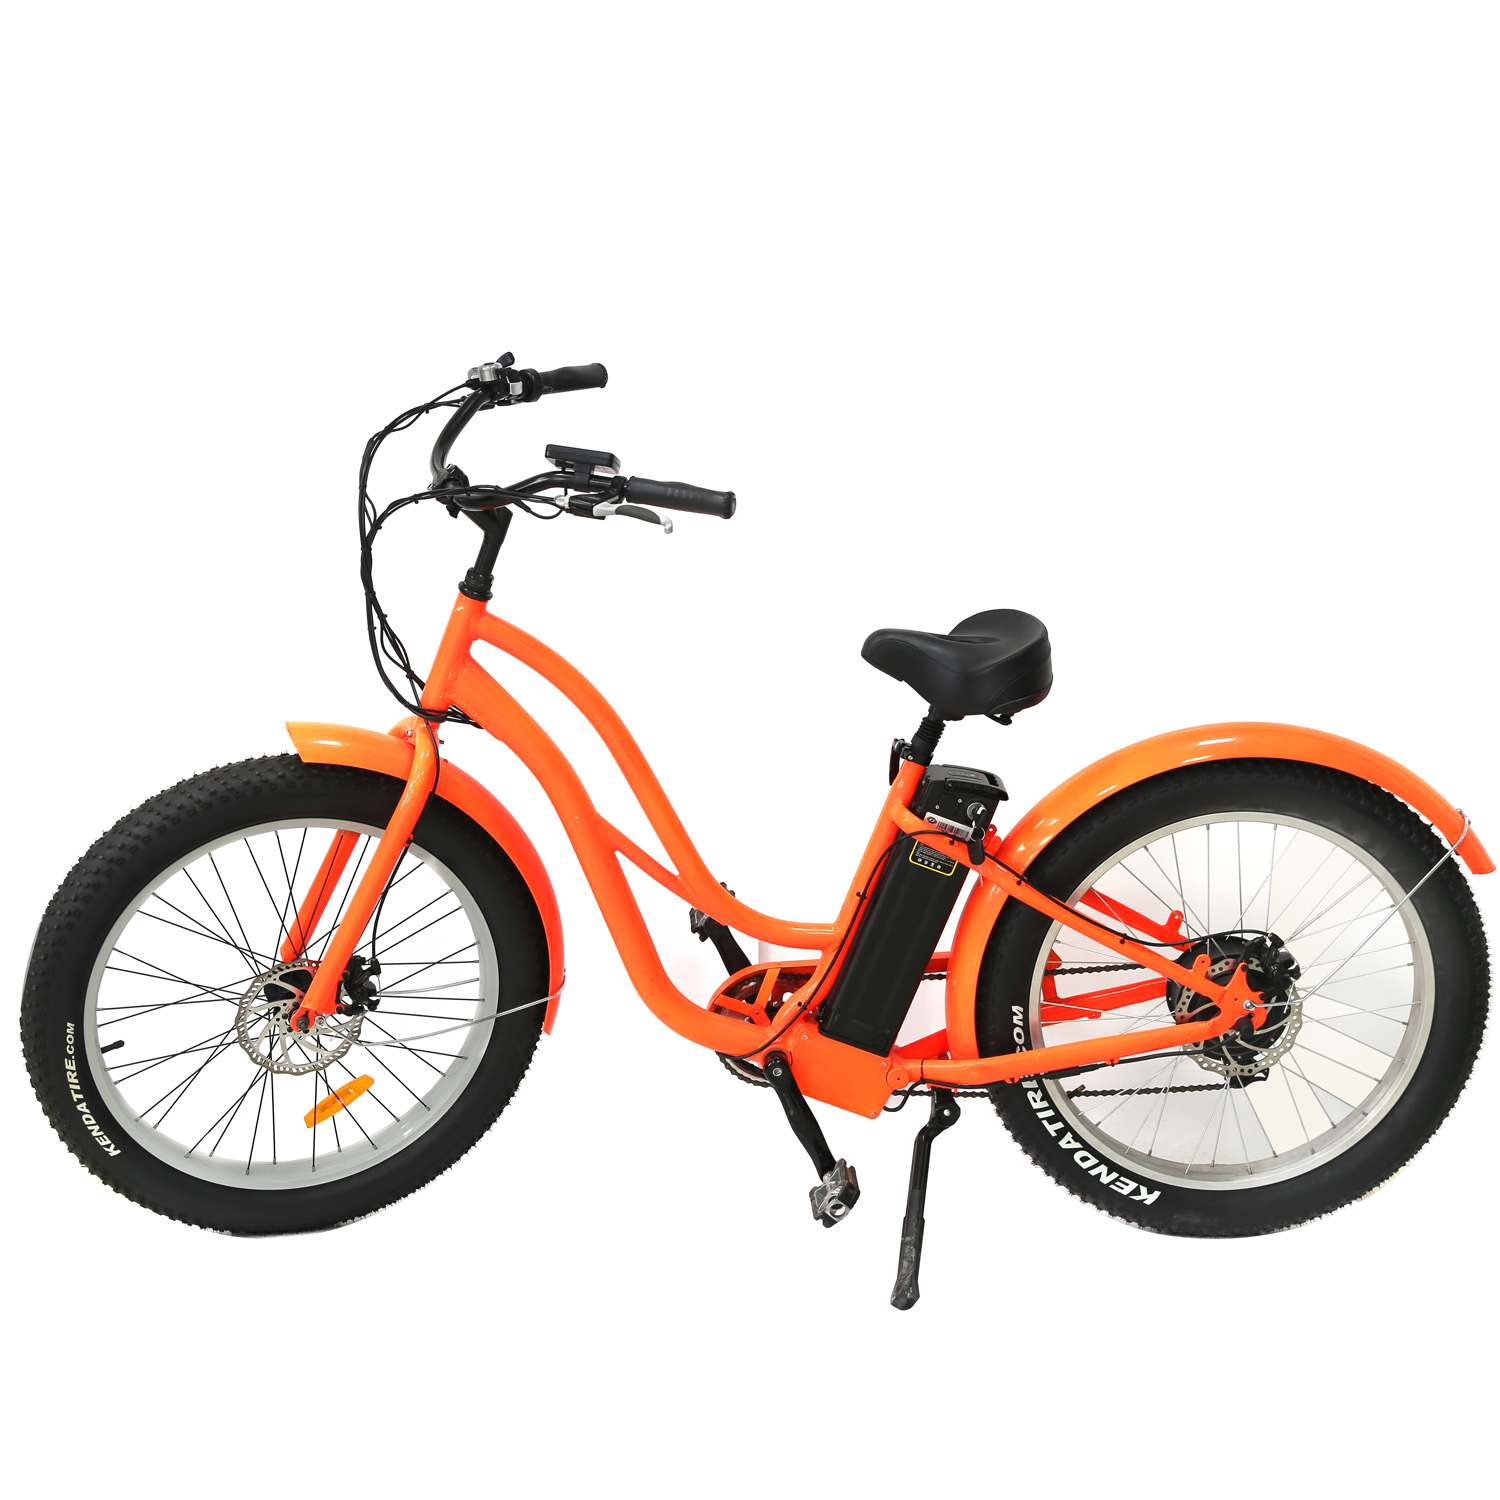 BAFANG 48V 500W 8Fun Motor 26 inch Bench Fat Tire Electric Bike with 48V 13AH Lithium Ion Battery